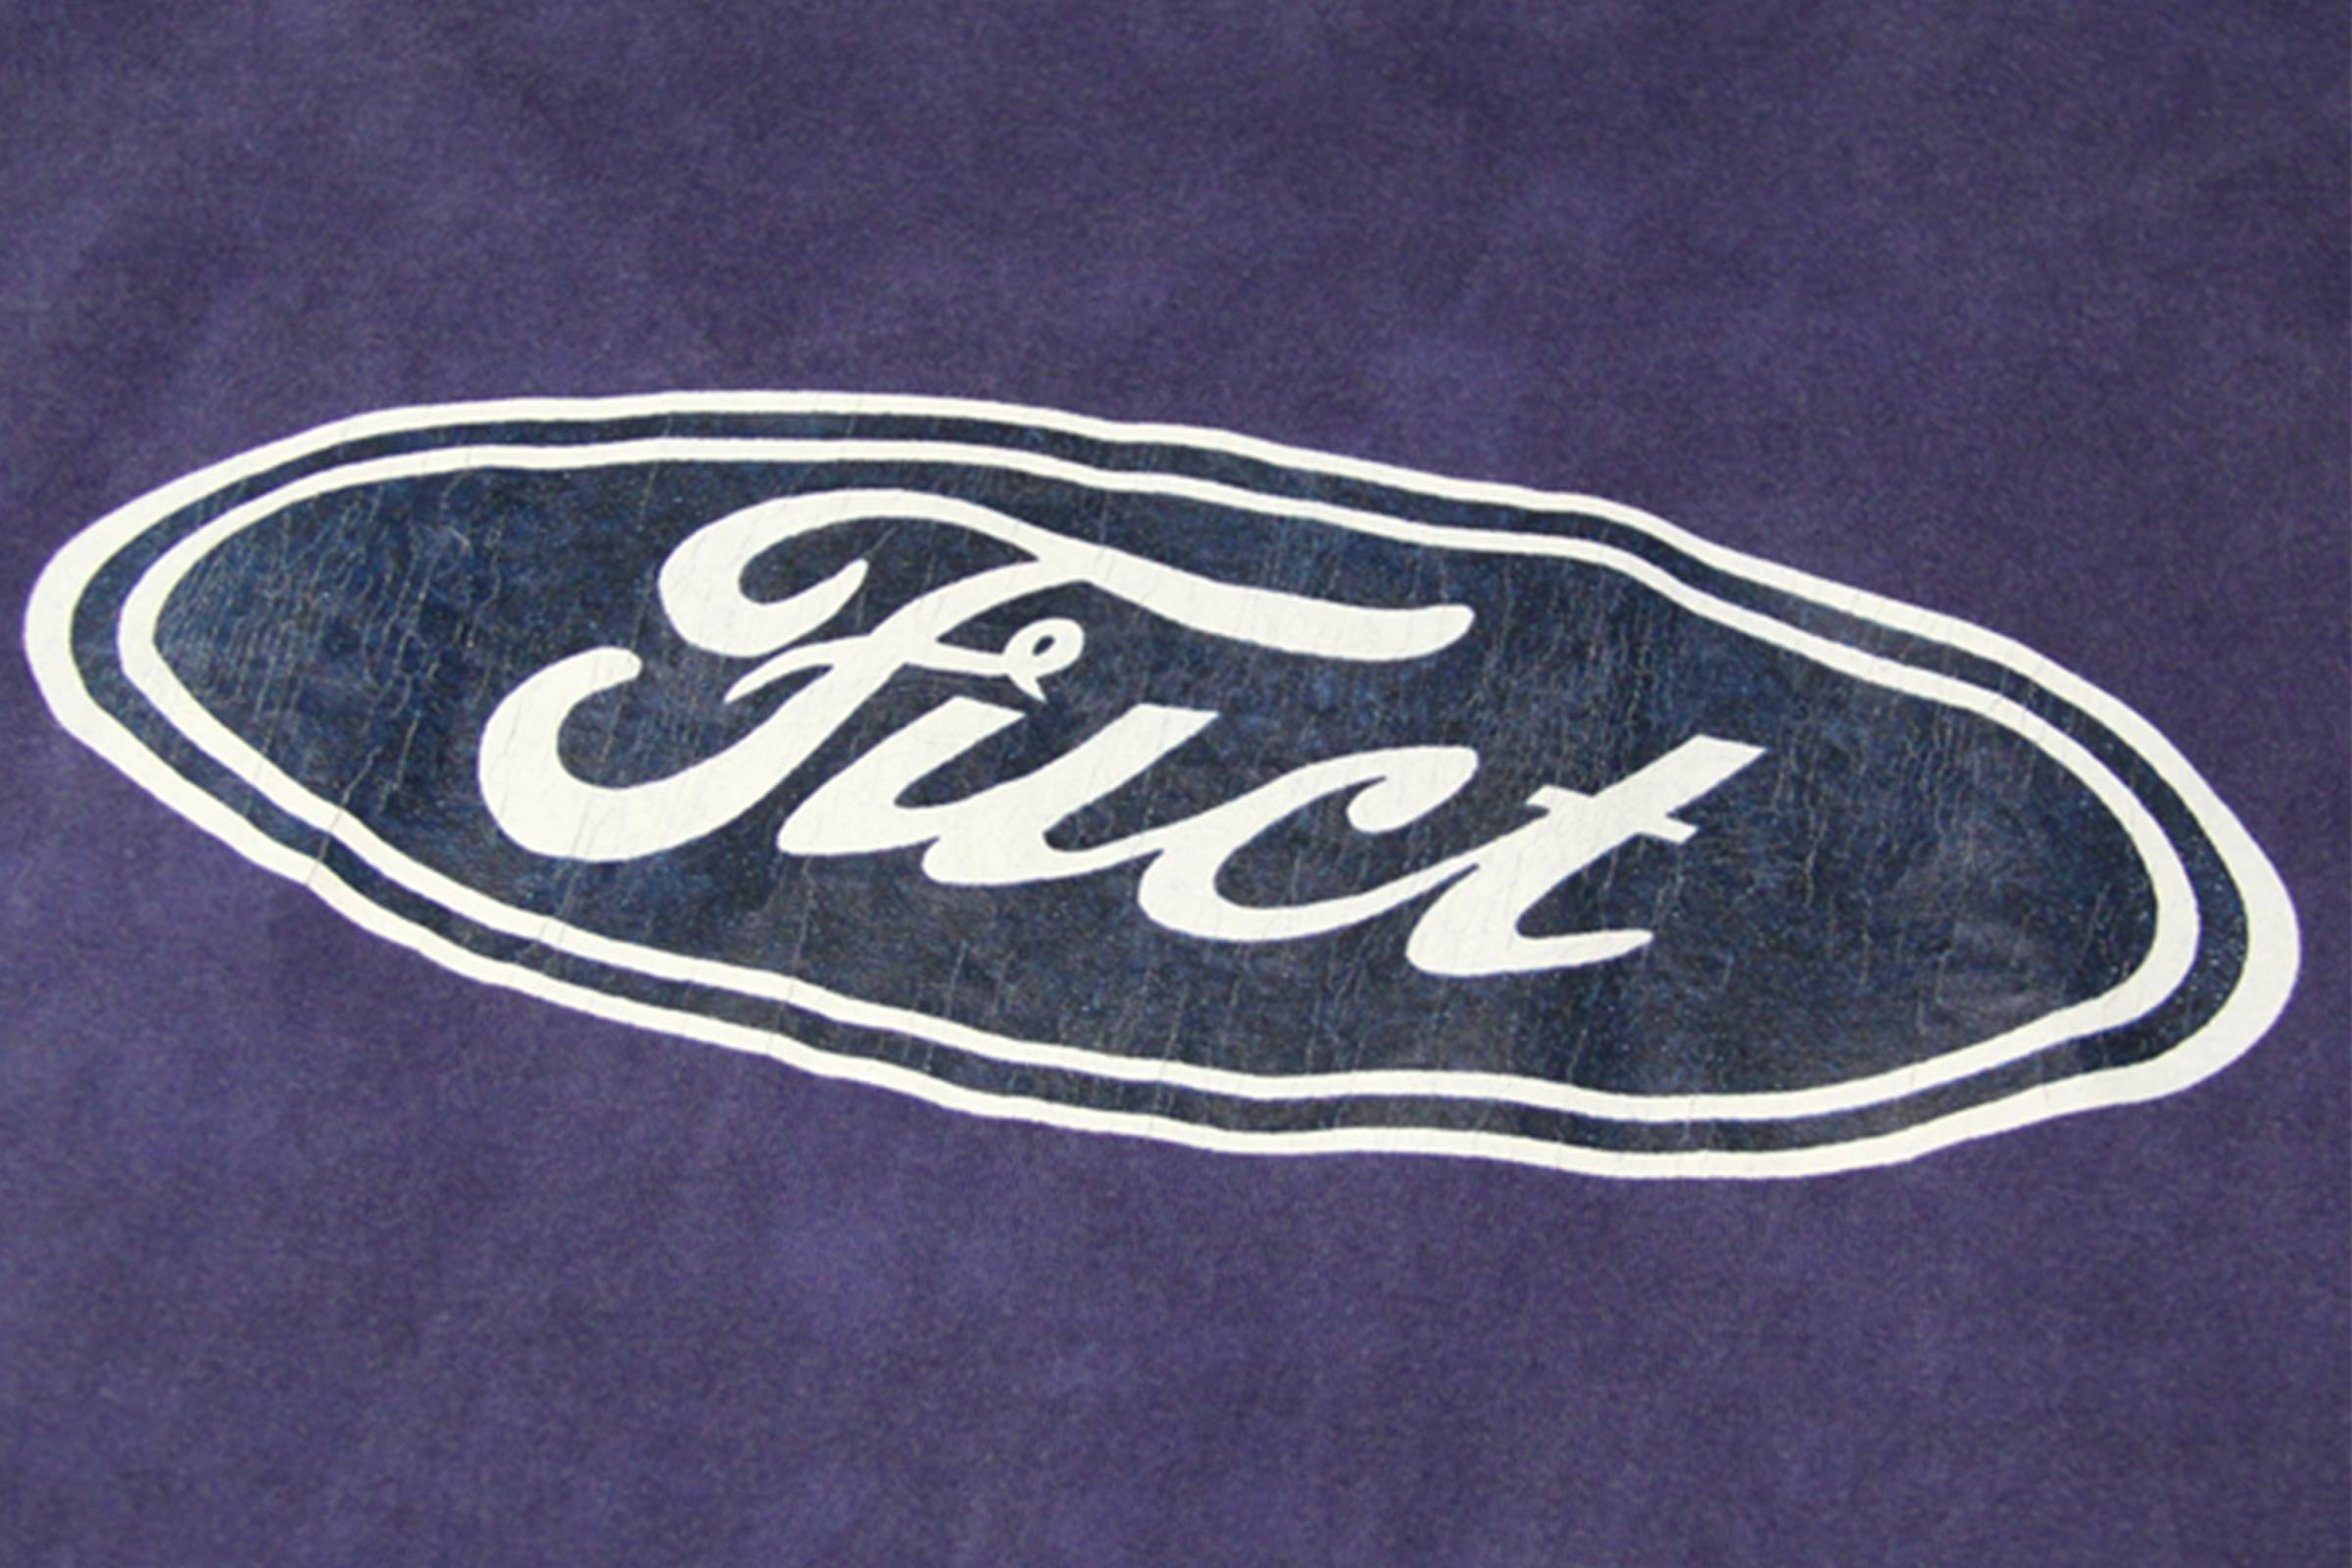 Don't Give A FUCT: A History of Upending The Status Quo